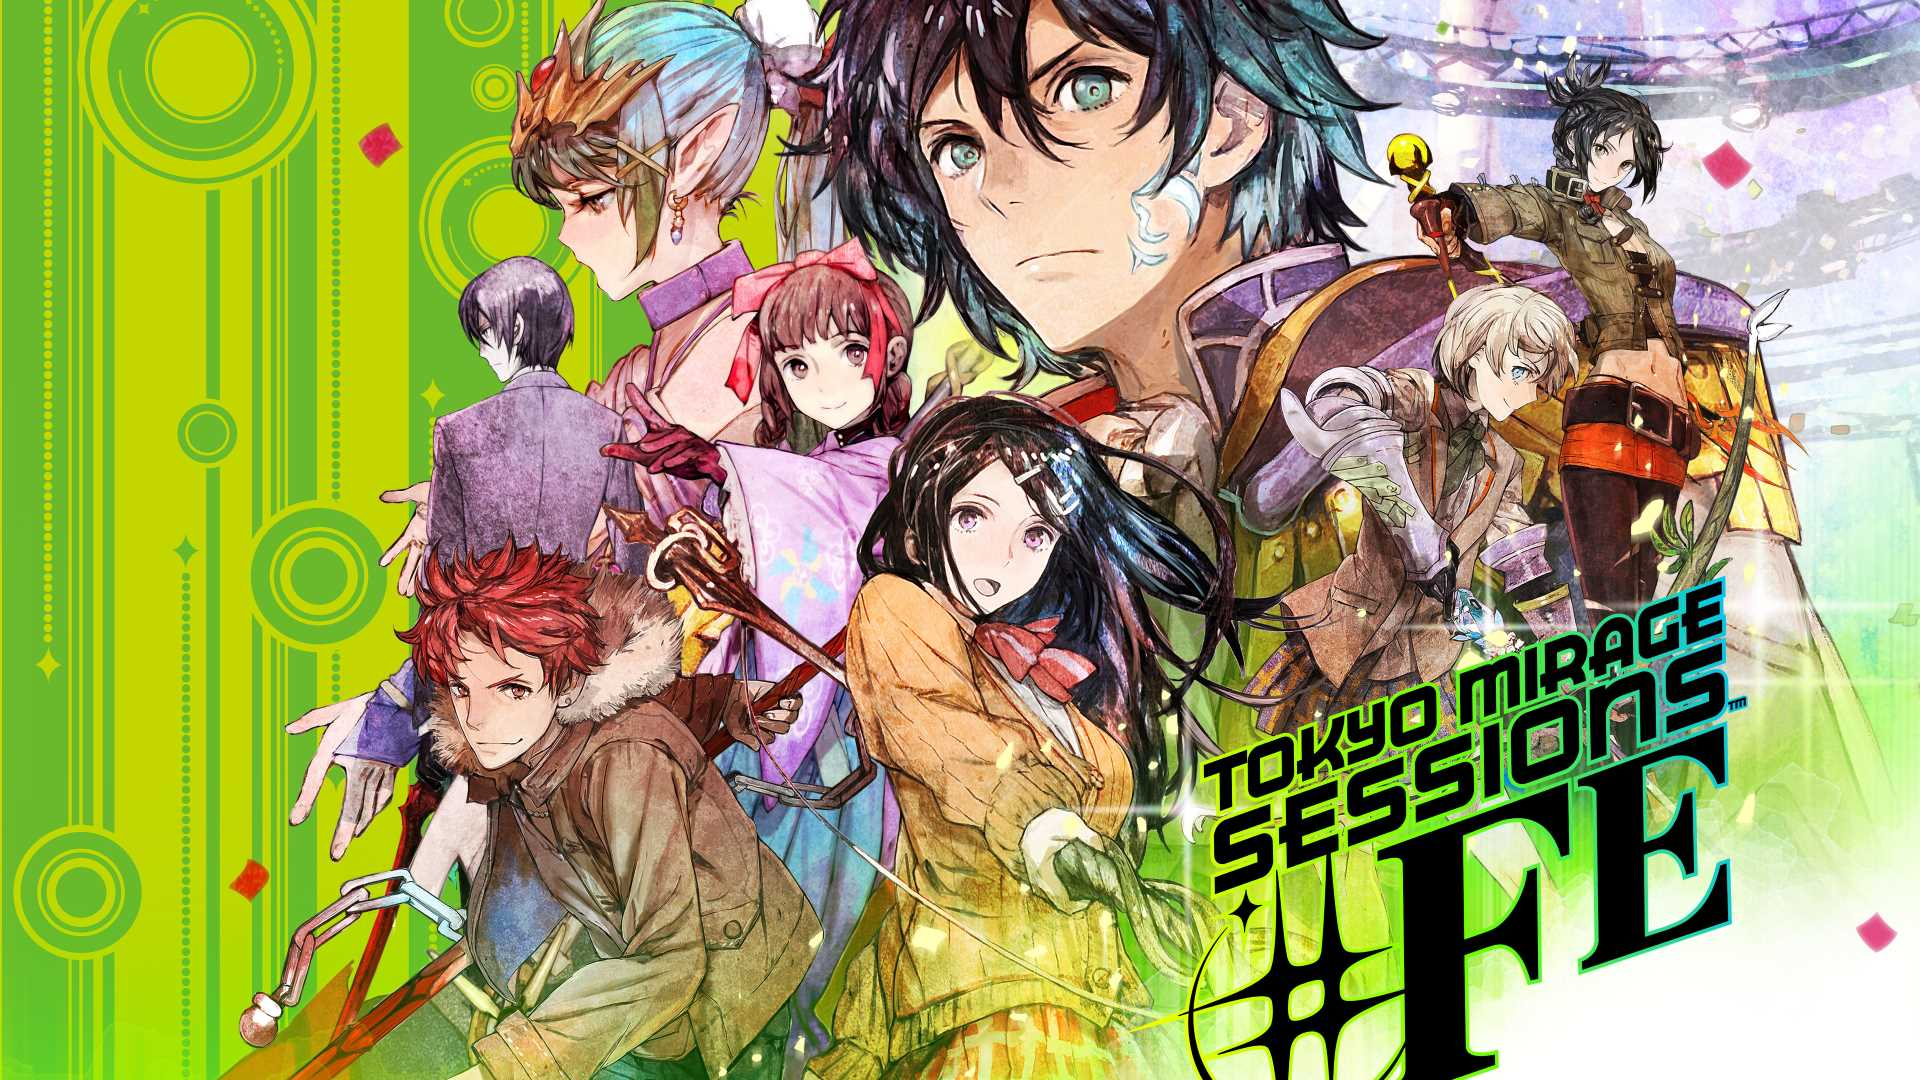 Tokyo Mirage Sessions #FE Deserves an Encore